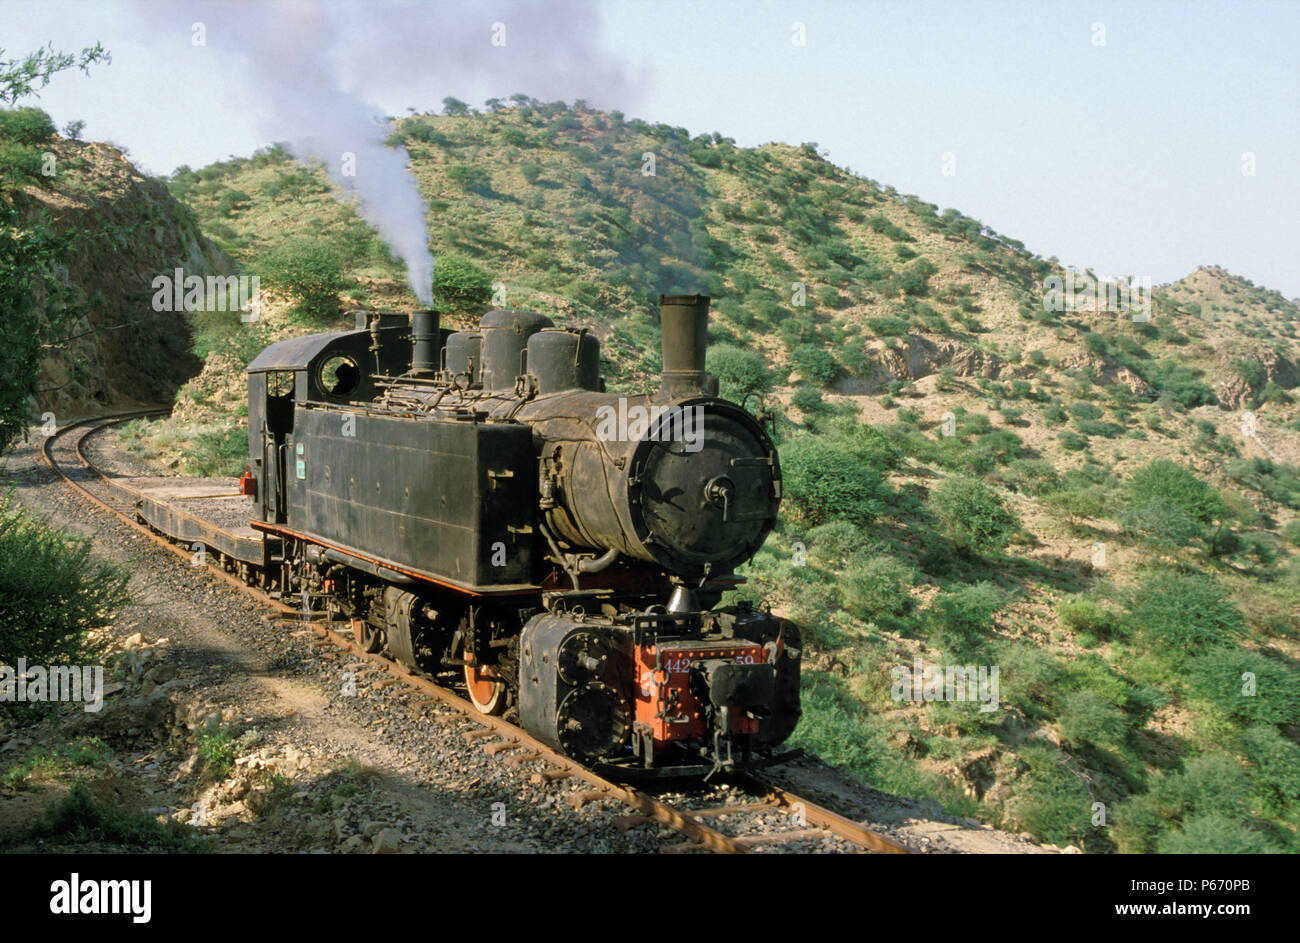 The rebuilding of Eritrea's railway between Masawa on the Red Sea Coast and Asmara the capital, following 30 years of abandonment and Civil war, was l - Stock Image